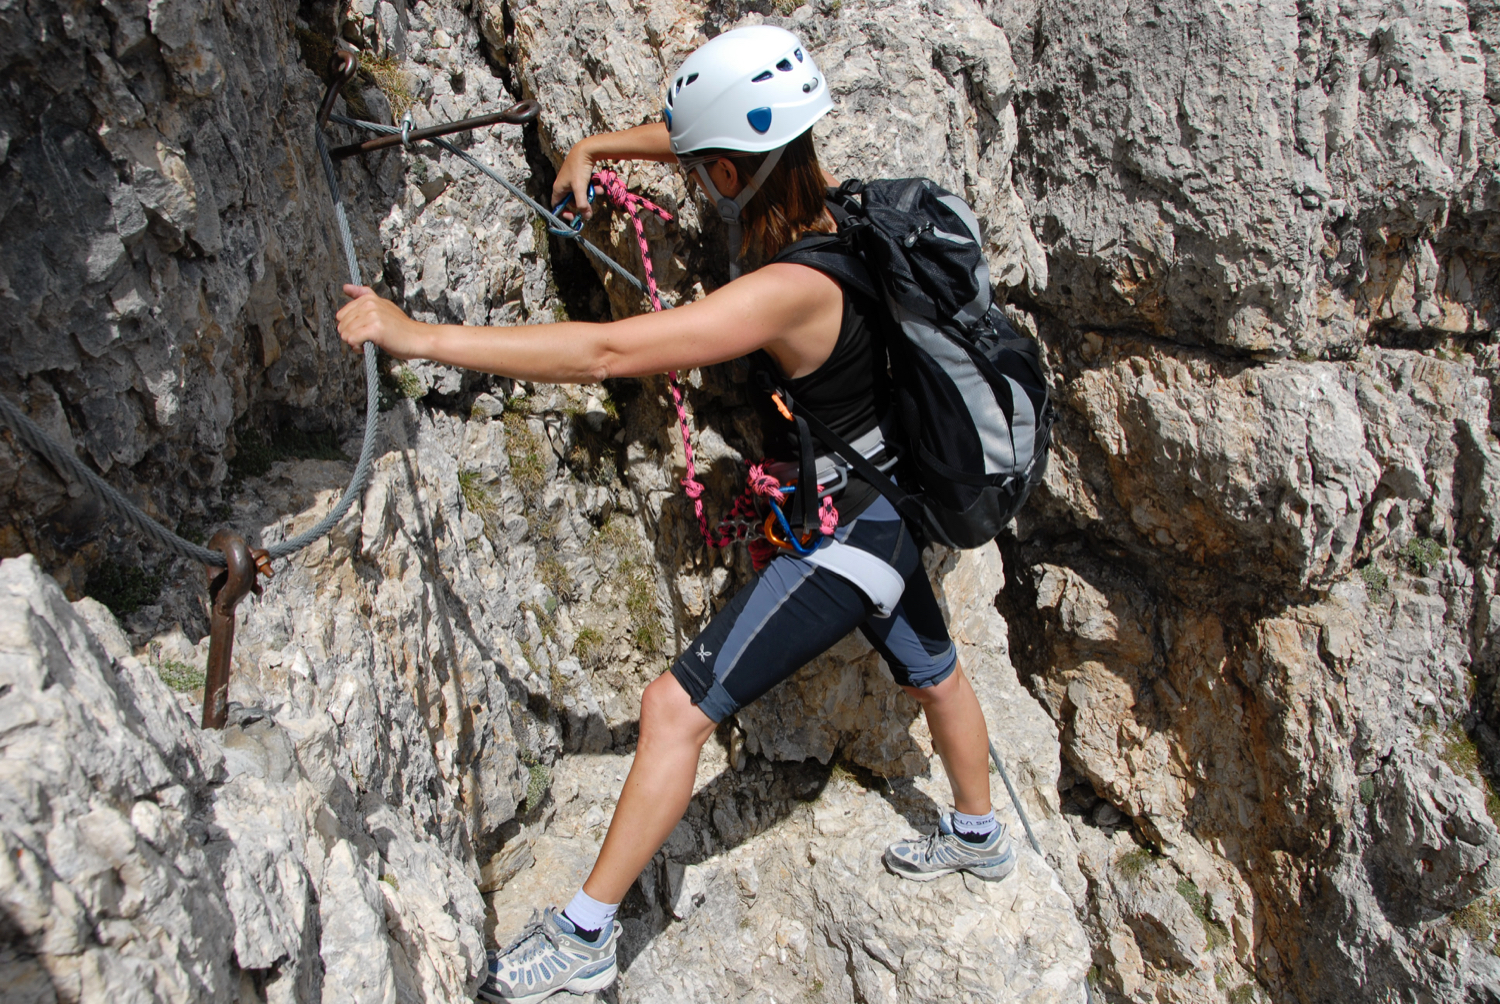 climbing woman - not possible in phase 1